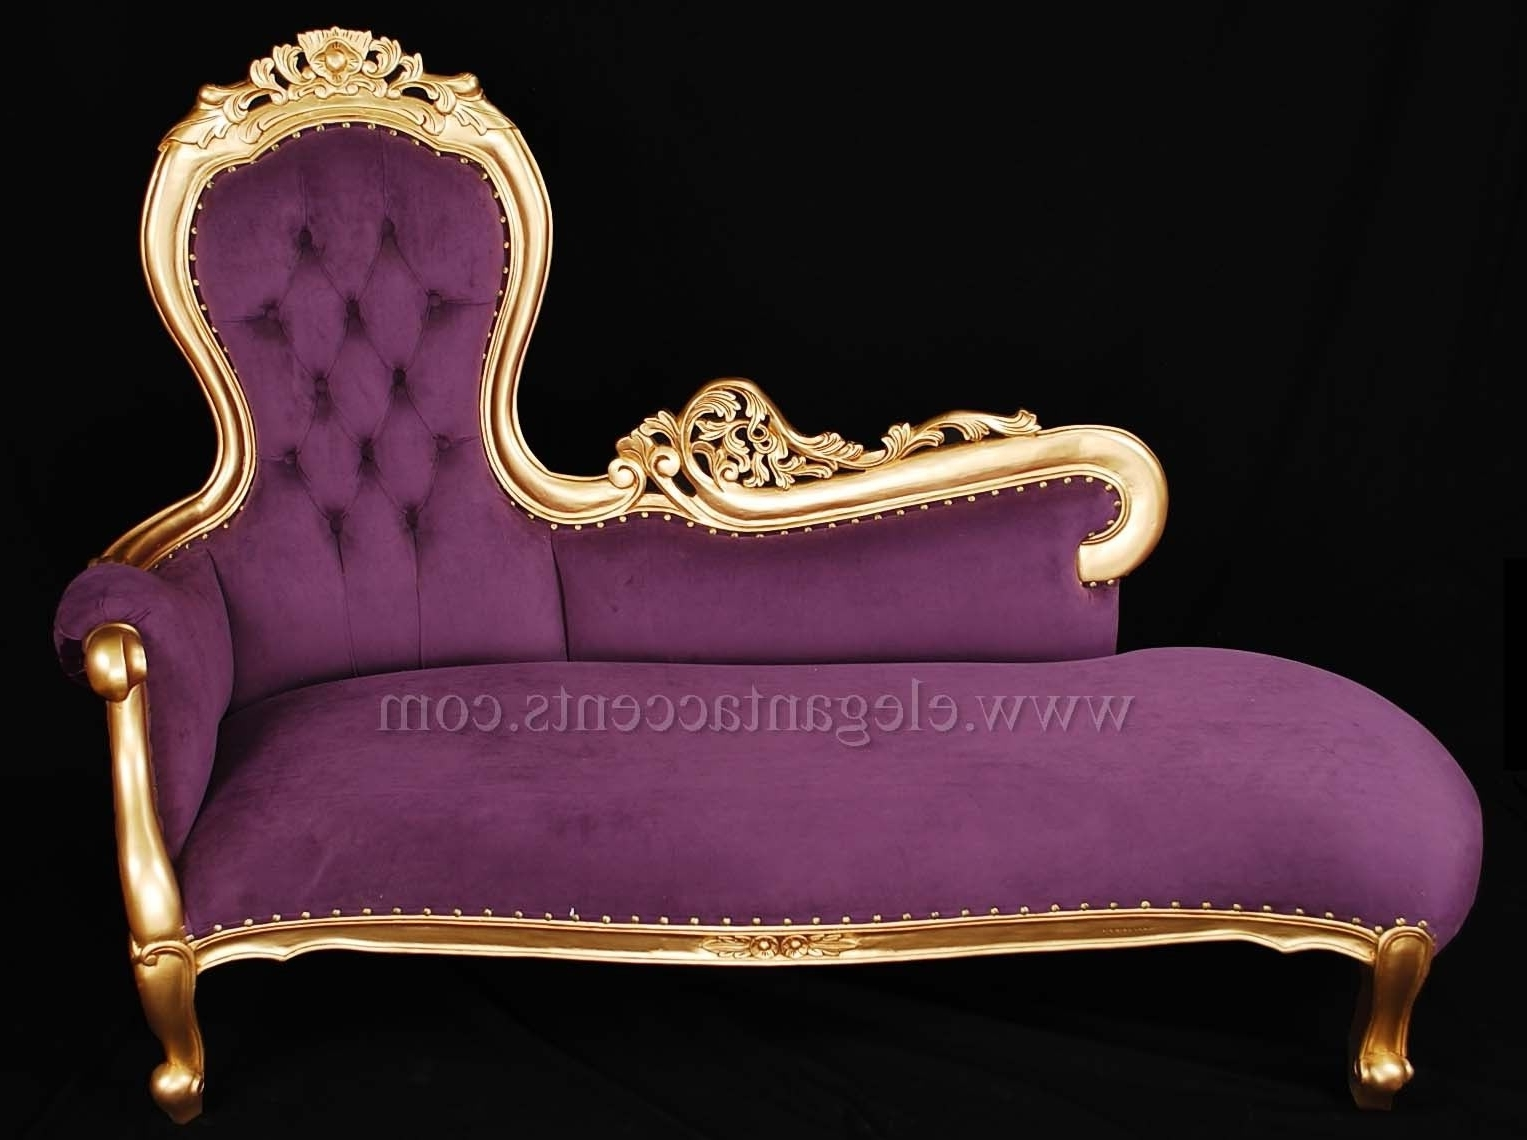 French Rose Sofa Chaise Lounge – Gold Finish With Purple Fabric Throughout Most Popular Purple Chaise Lounges (View 3 of 15)